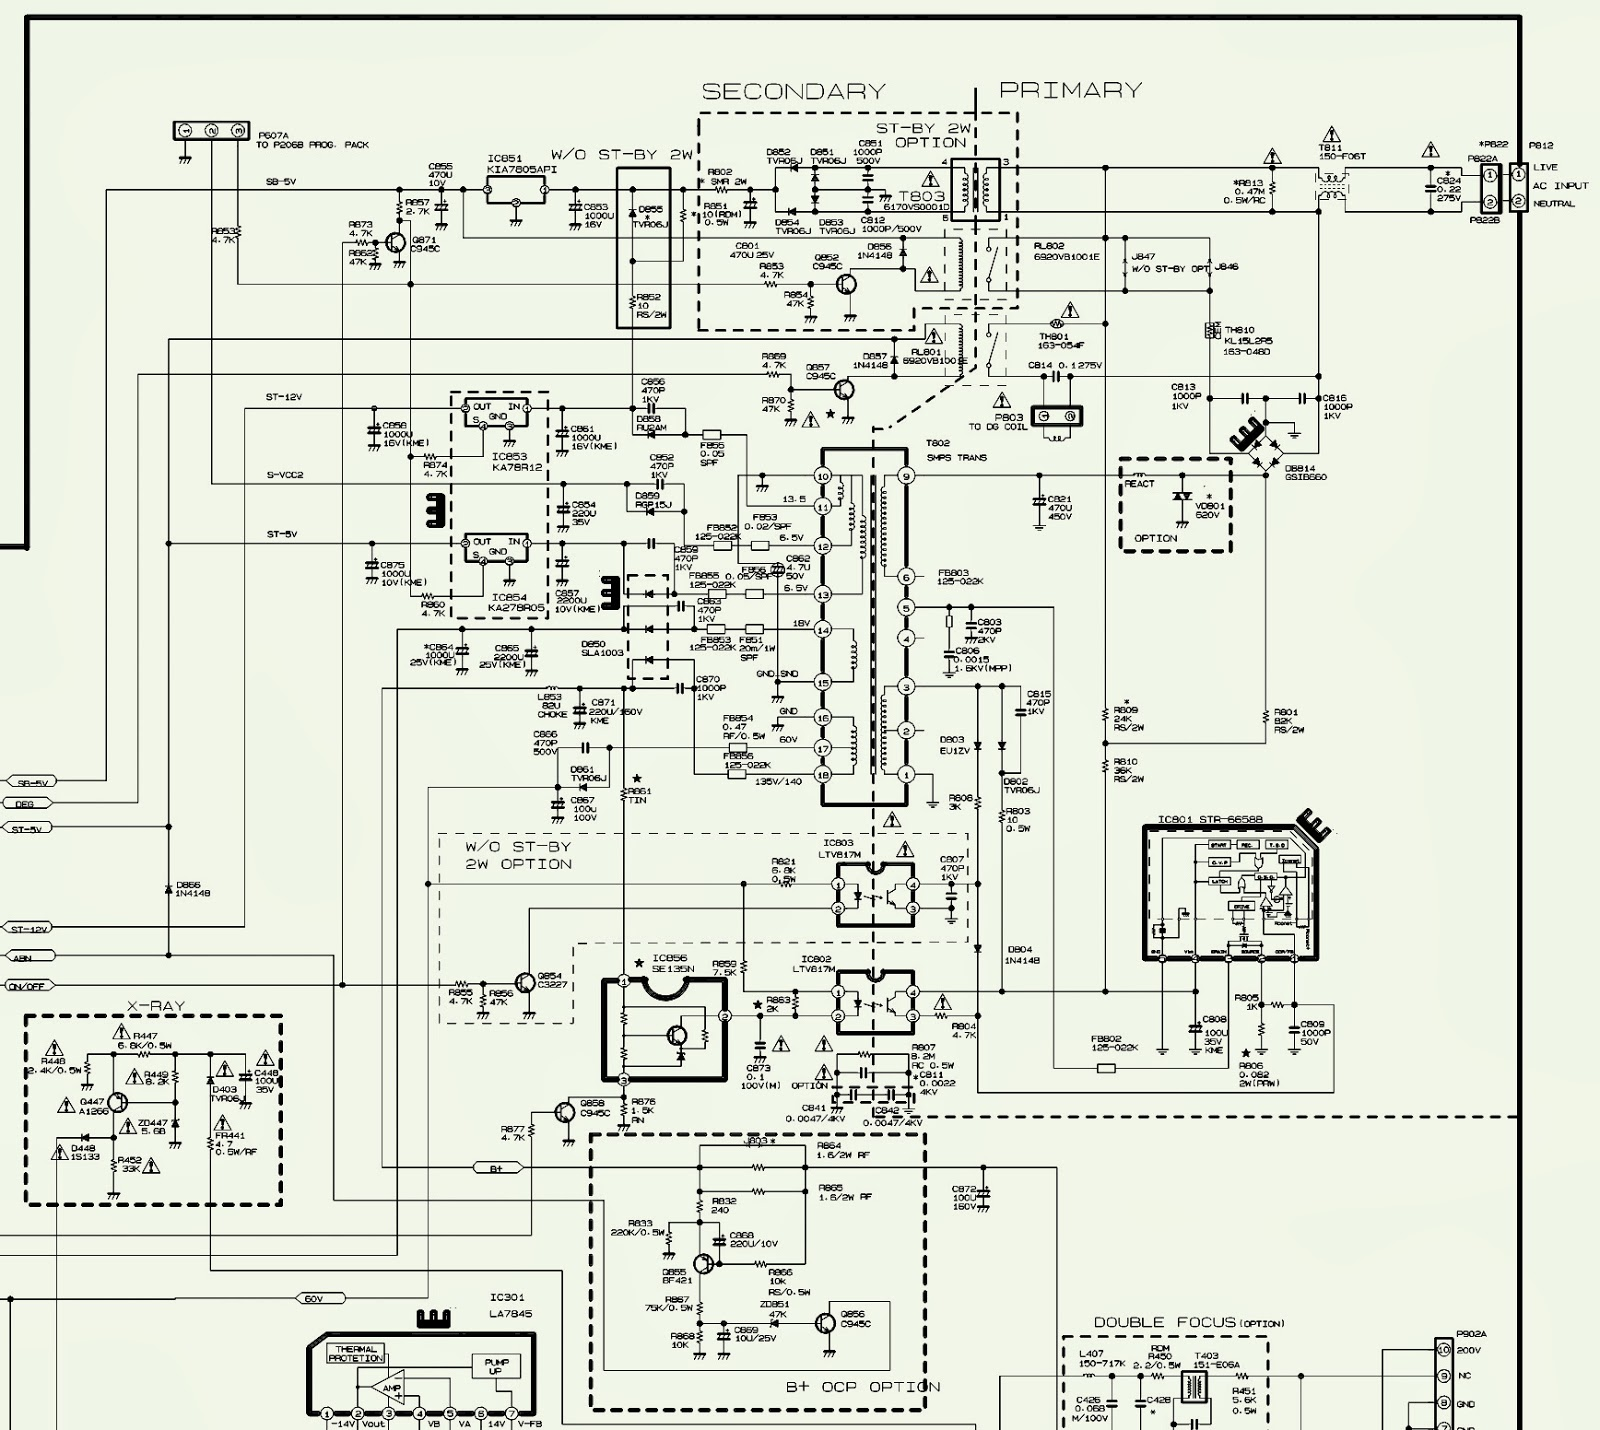 Lg Tv Schematic Wiring Diagram, Lg, Free Engine Image For